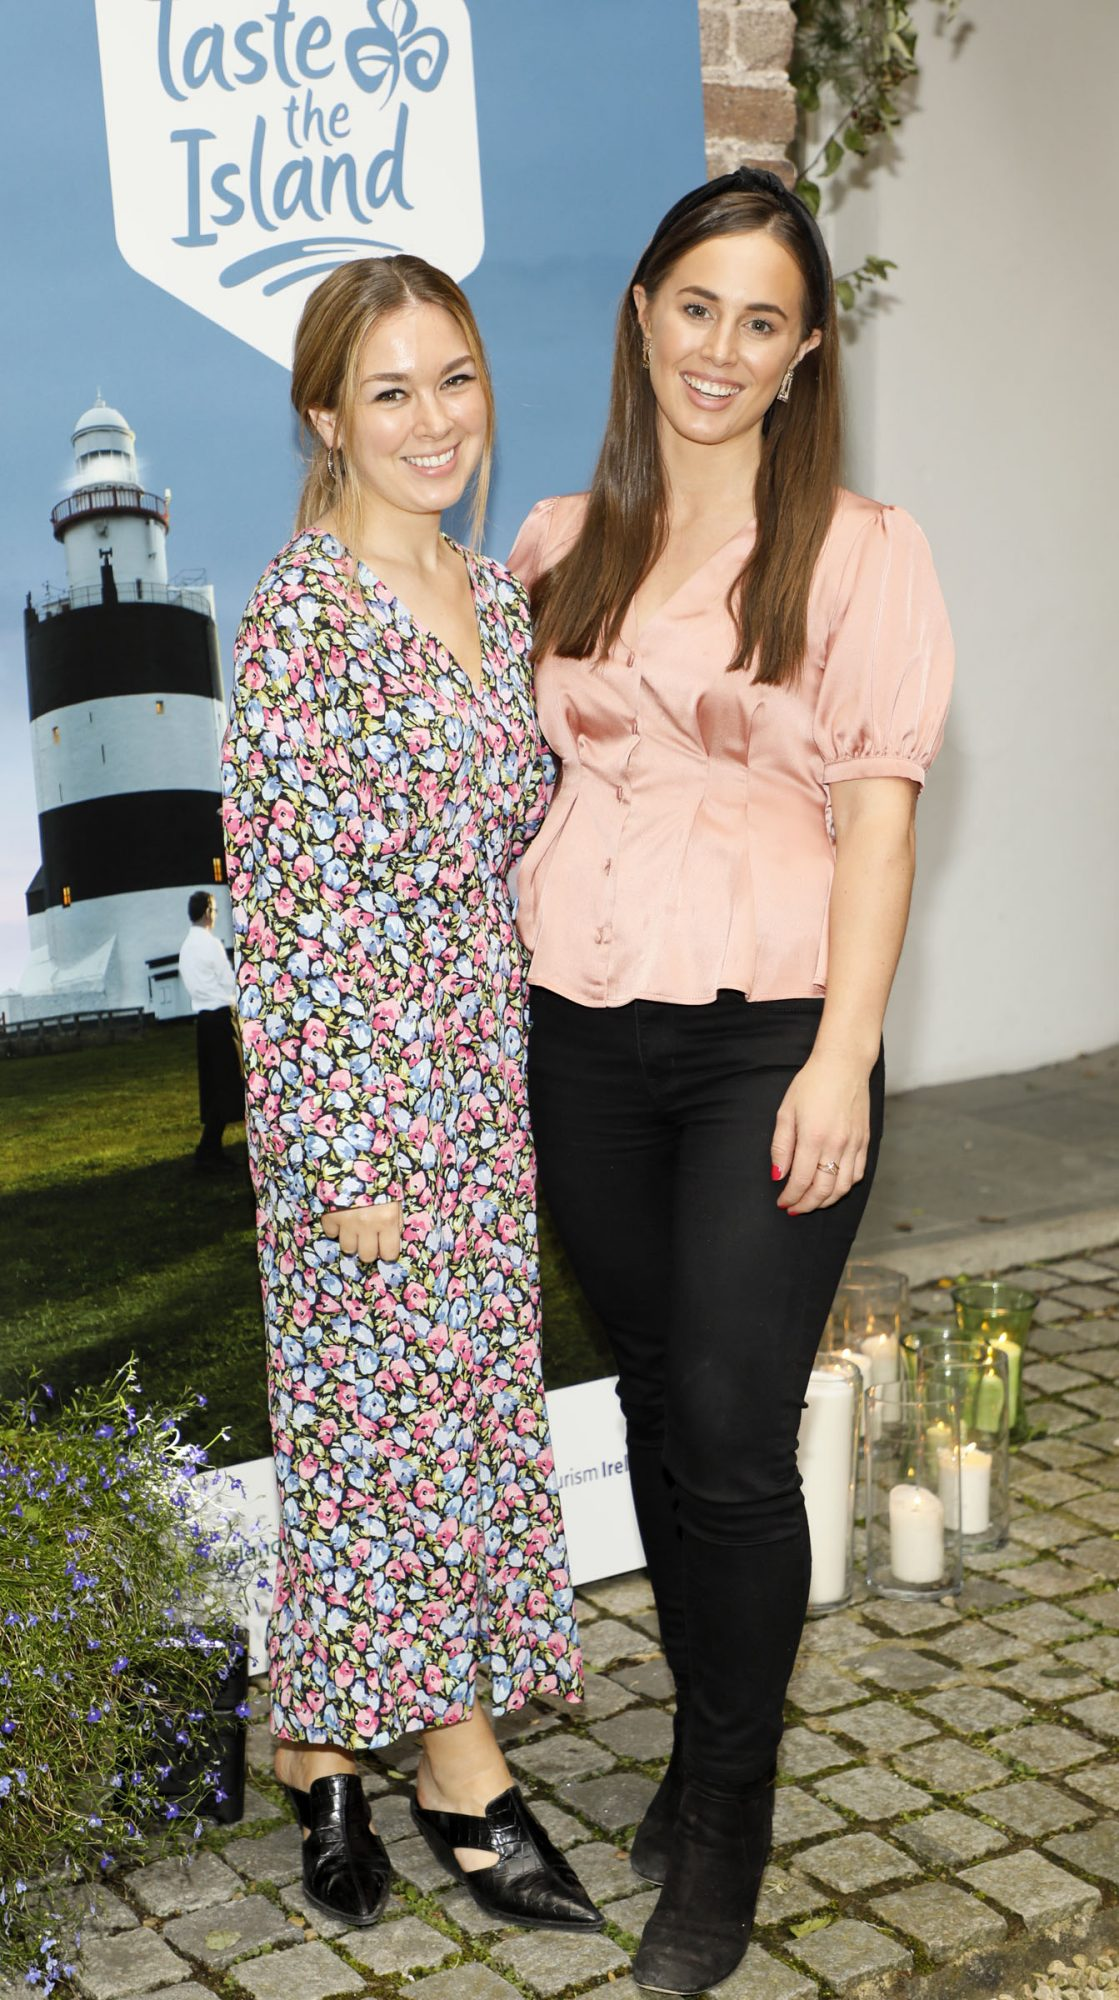 Elizabeth Fearns and Jenny Mulvin at the launch of Taste the Island, a 12 week celebration of Ireland's seasonal ingredients, adventurous tastes and bold experiences taking place this September, October and November. Photo: Kieran Harnett